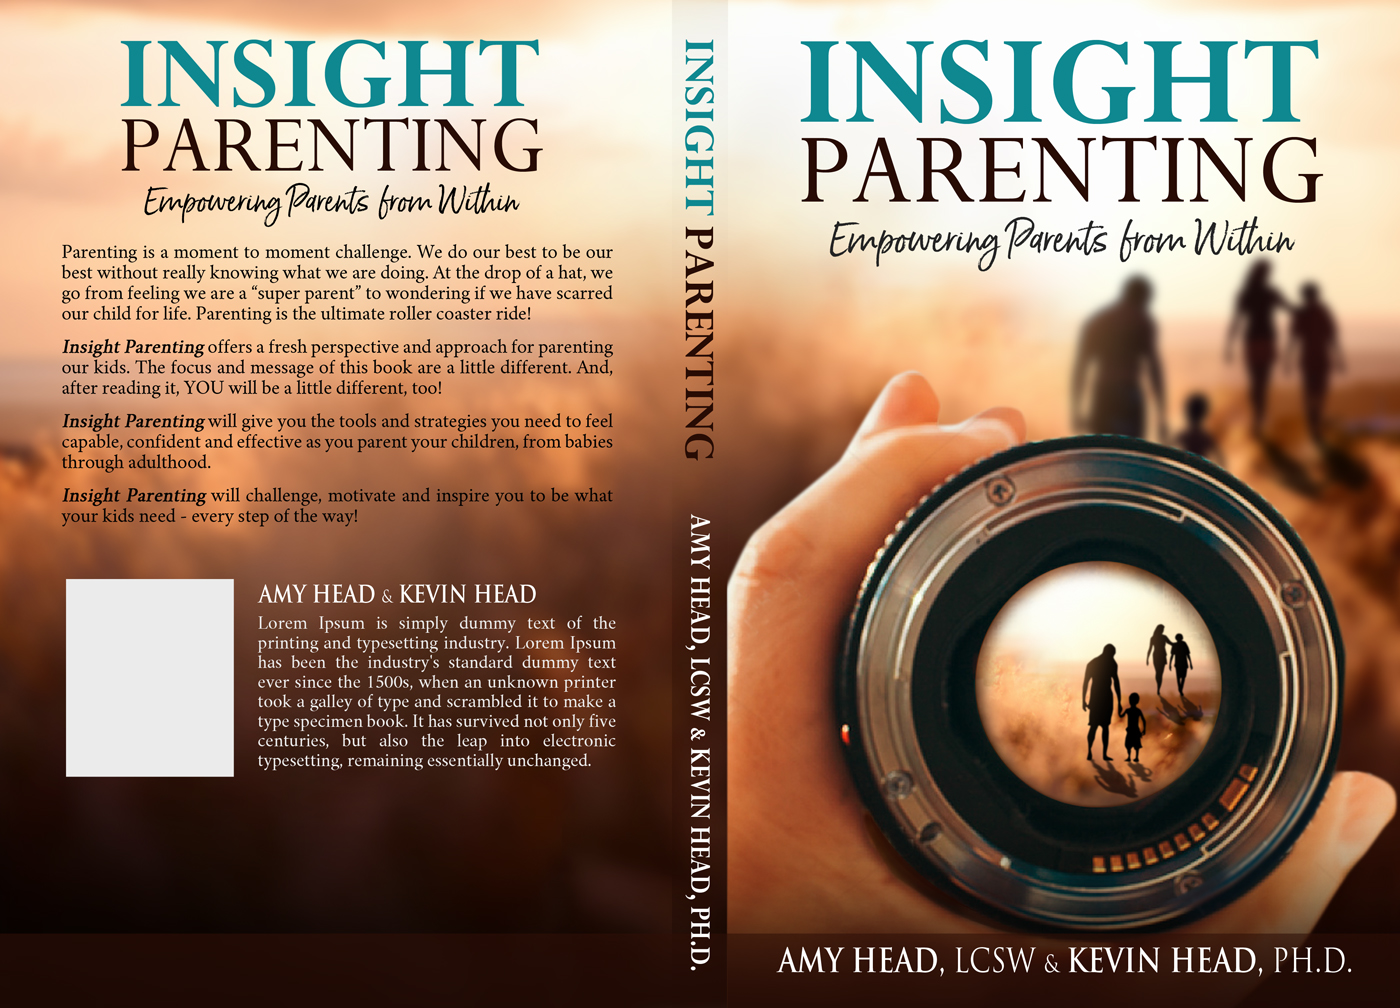 Book Cover Design by Gfx26 for New